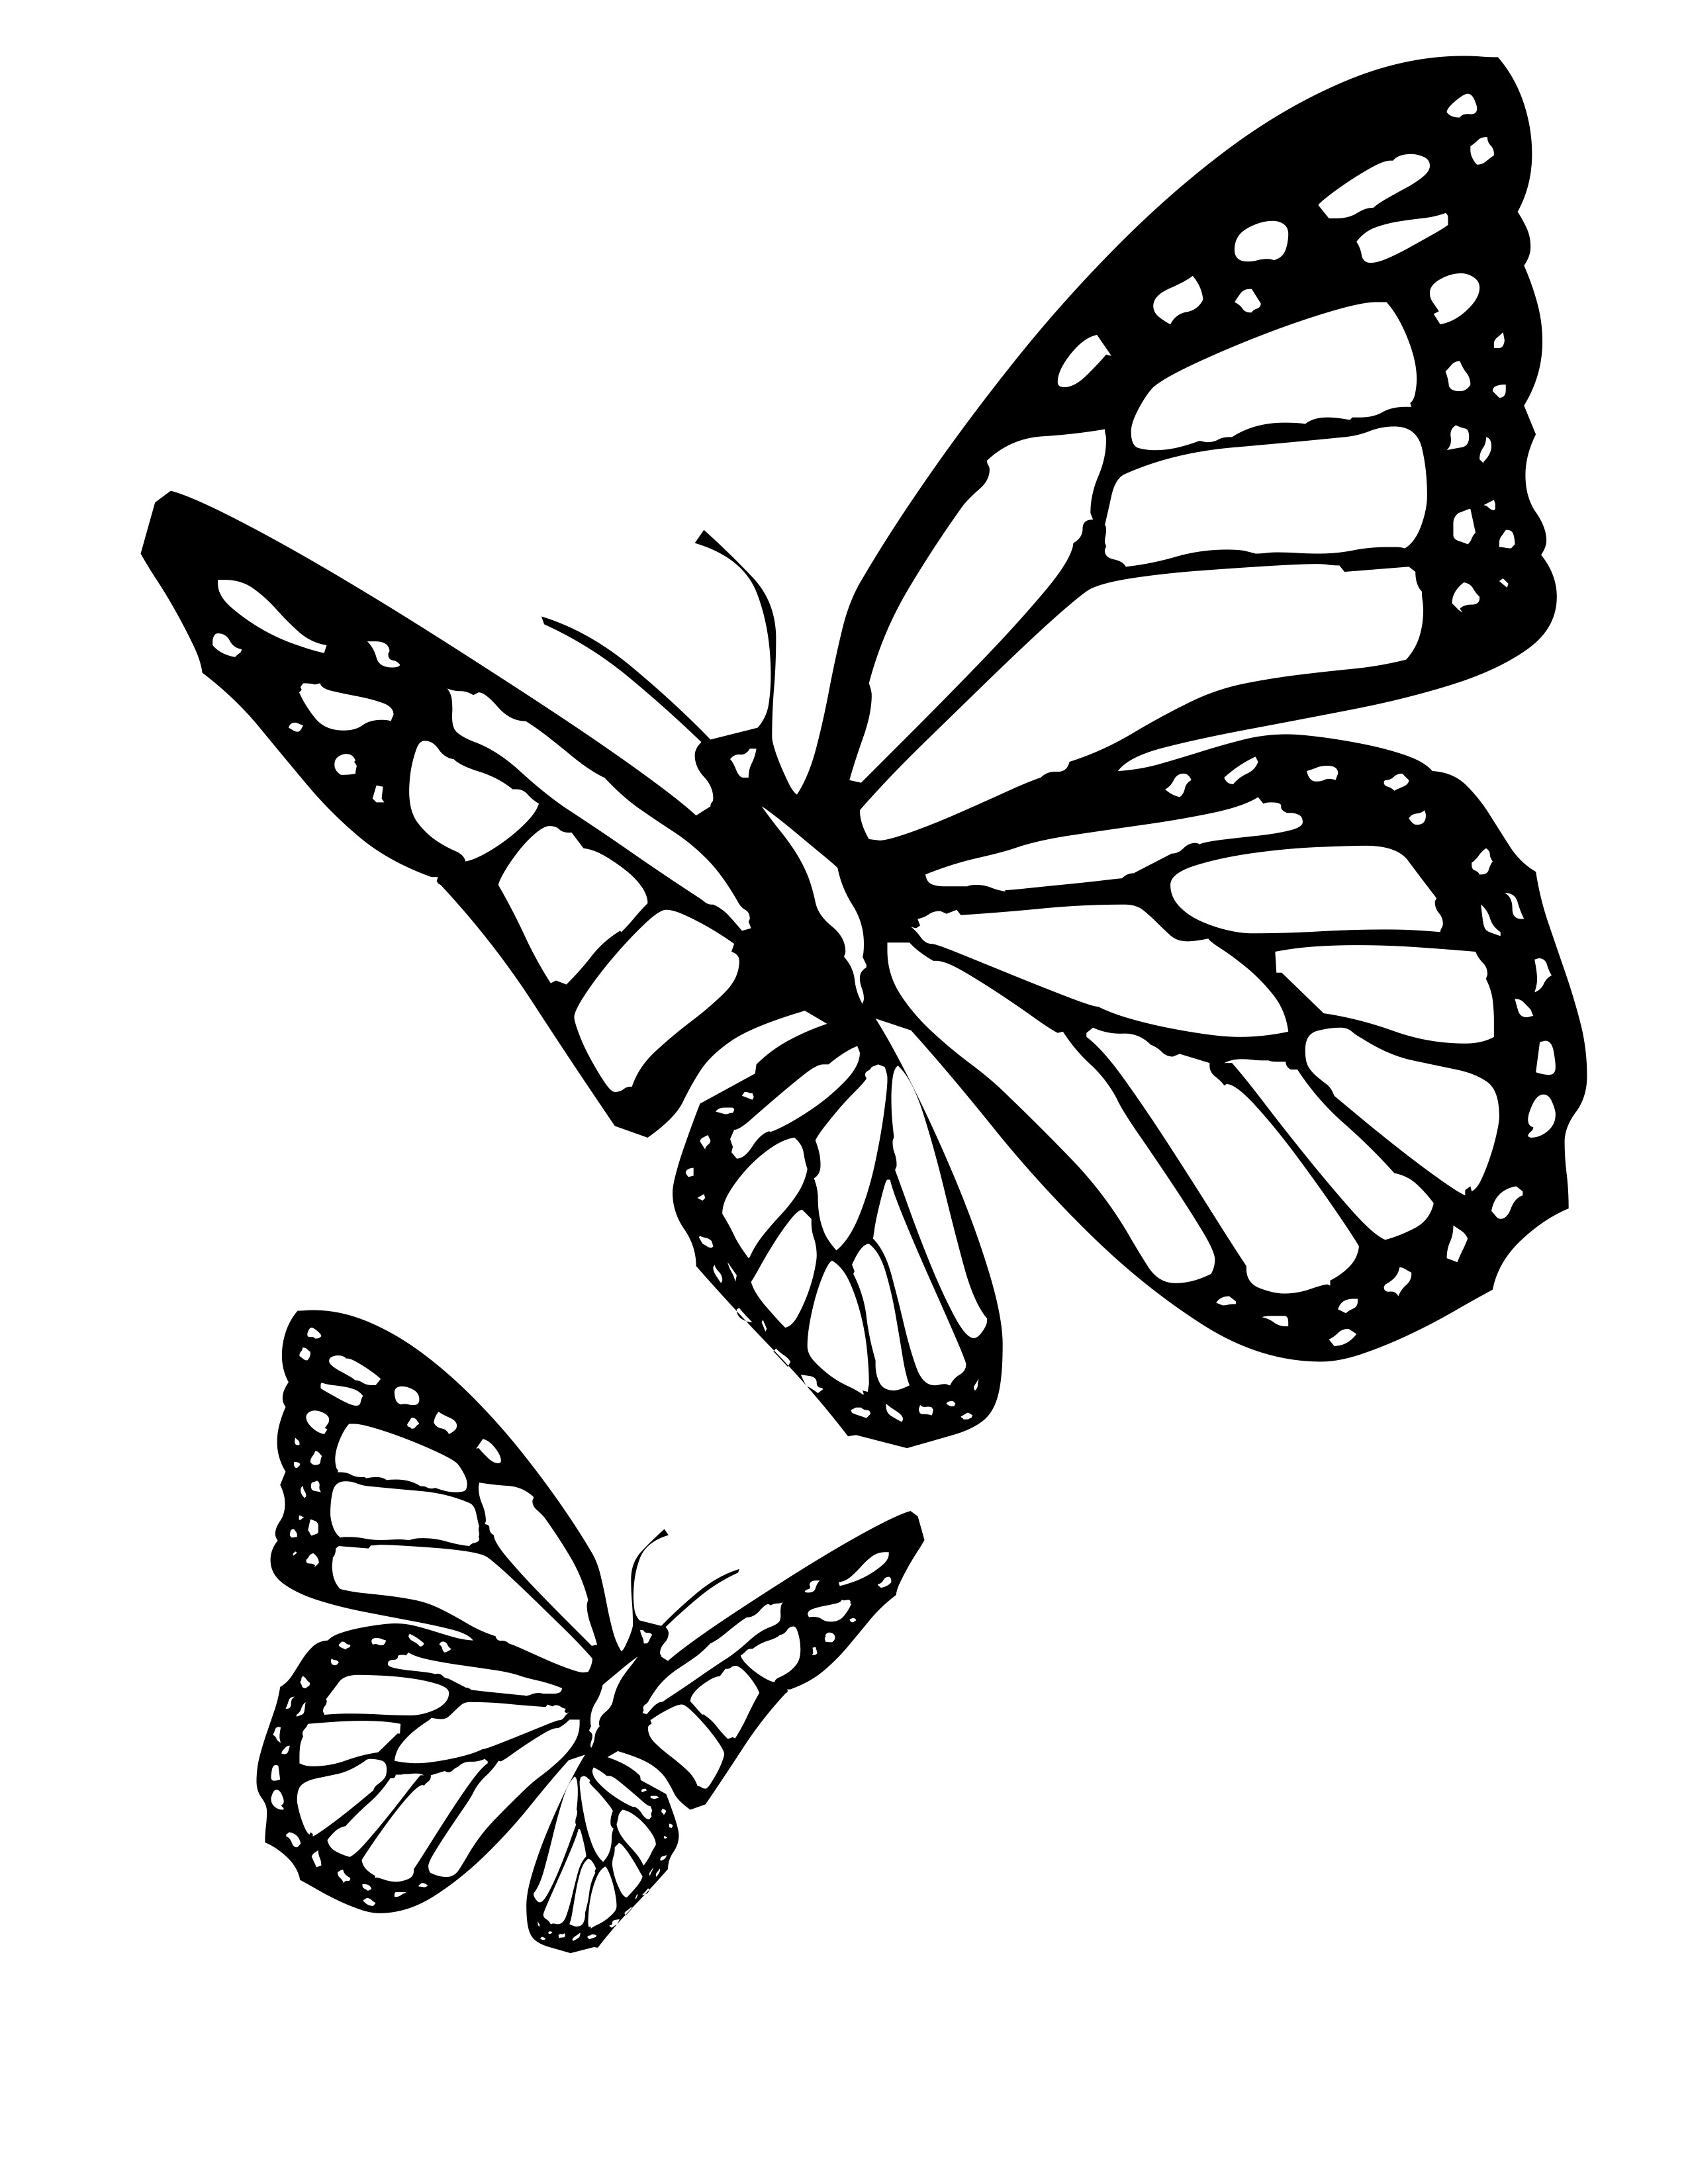 flying butterfly drawing at getdrawings com